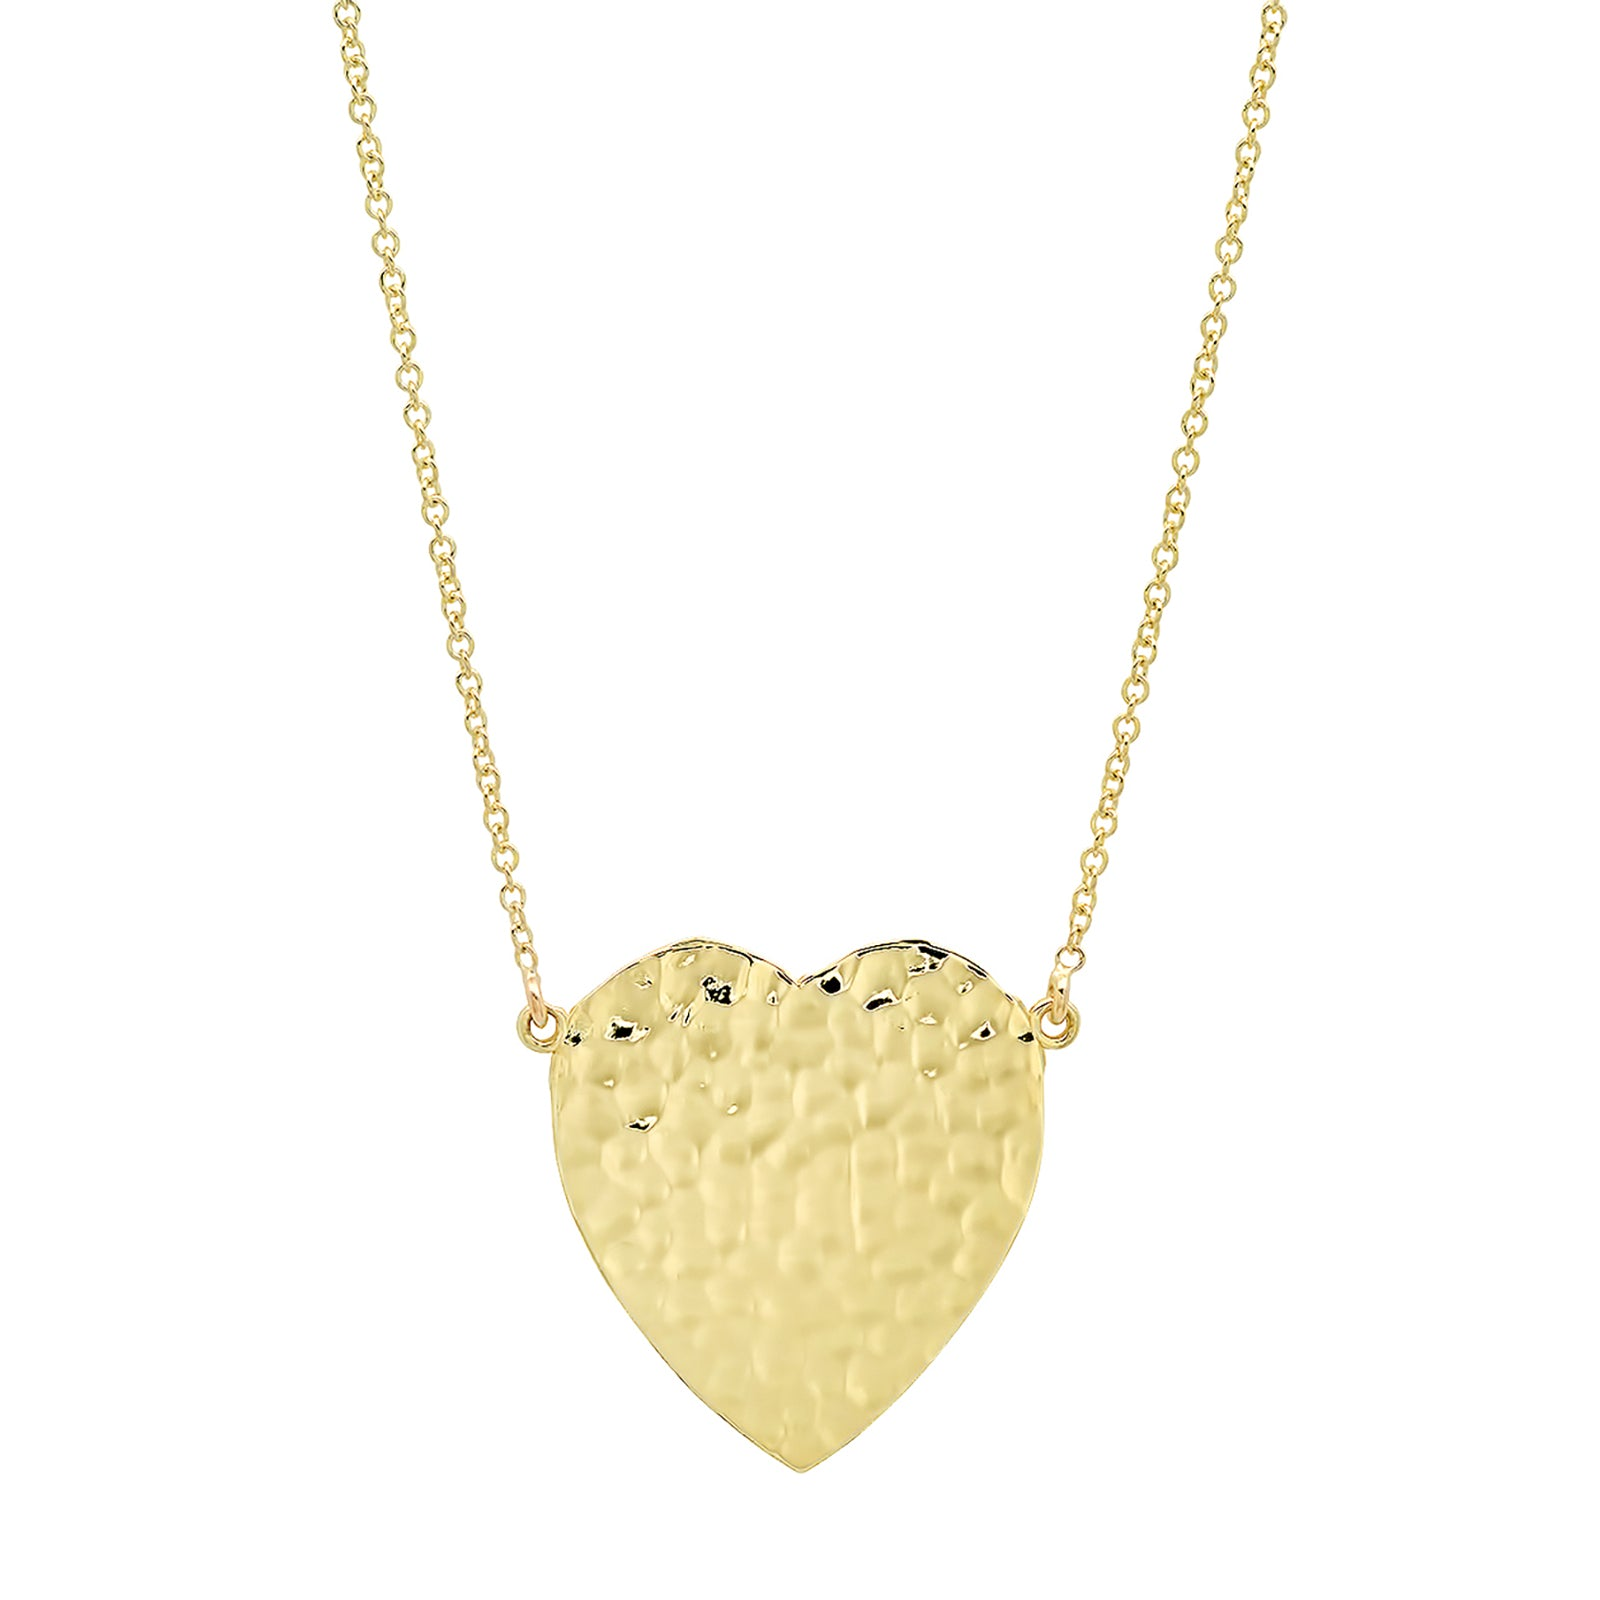 Jennifer Meyer Hammered Heart Pendant Necklace - Necklaces - Broken English Jewelry